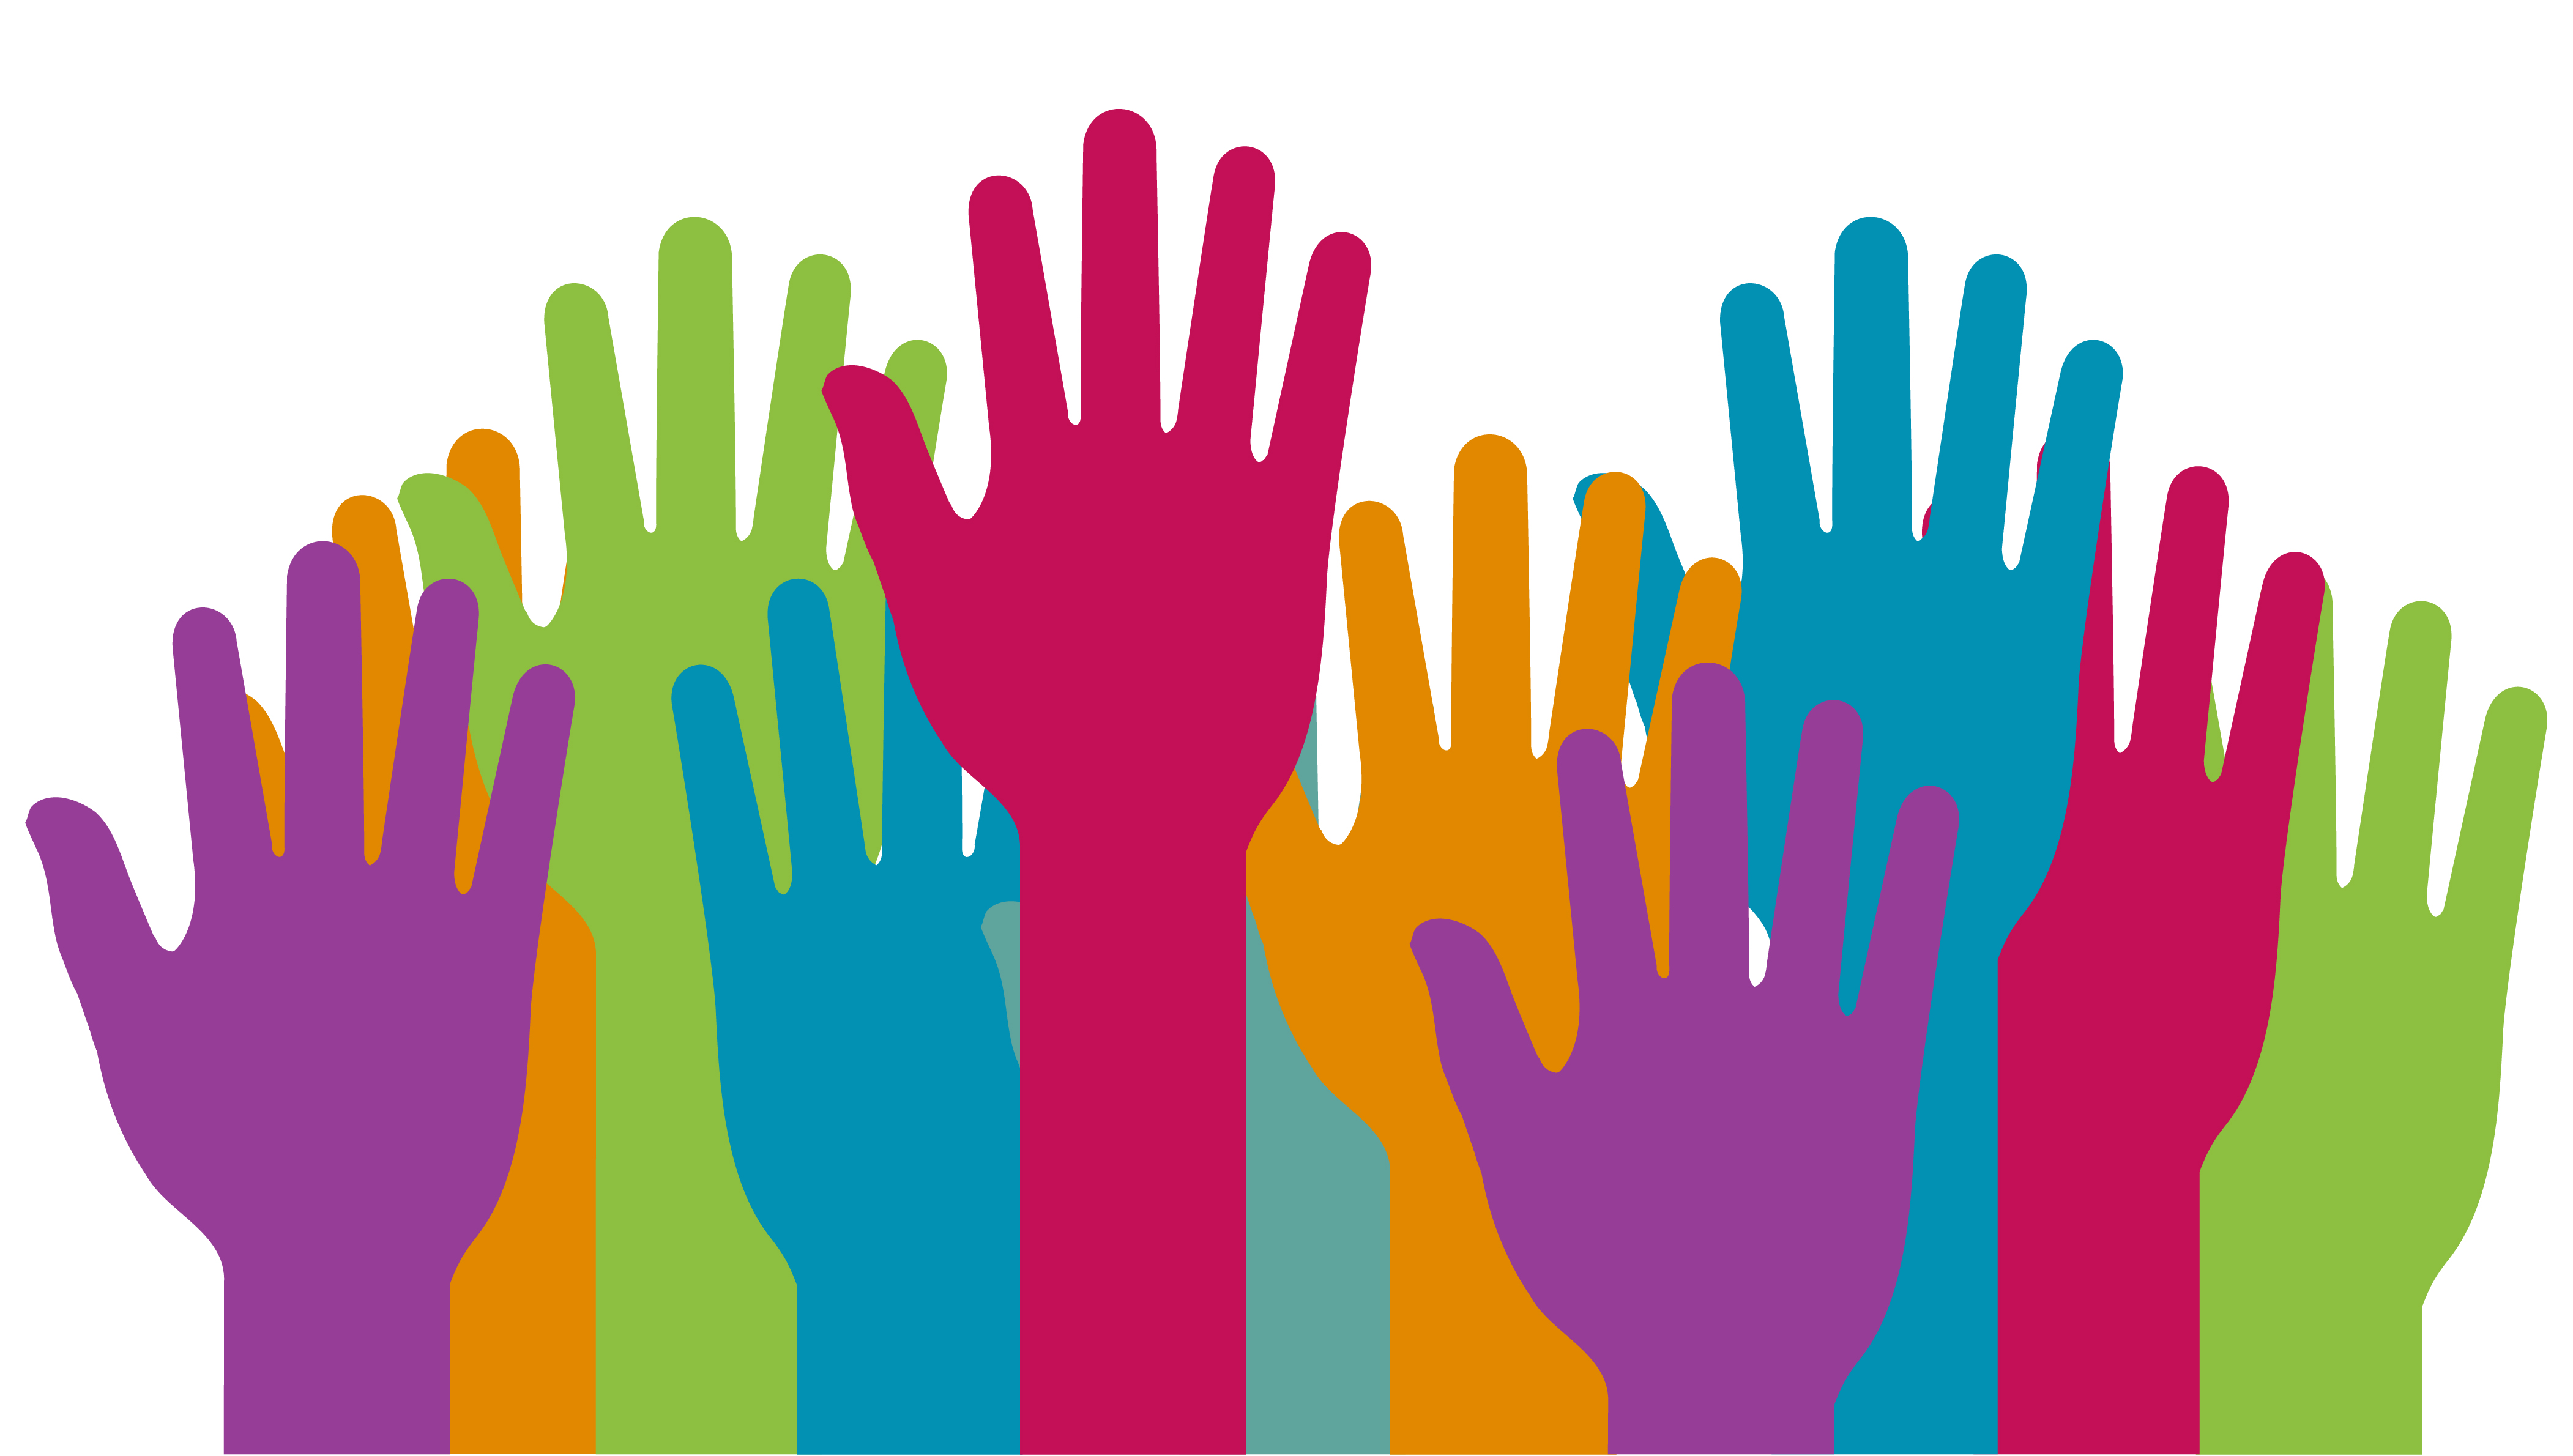 Illustration of 10 hands raised in the air, in various different bright colours/